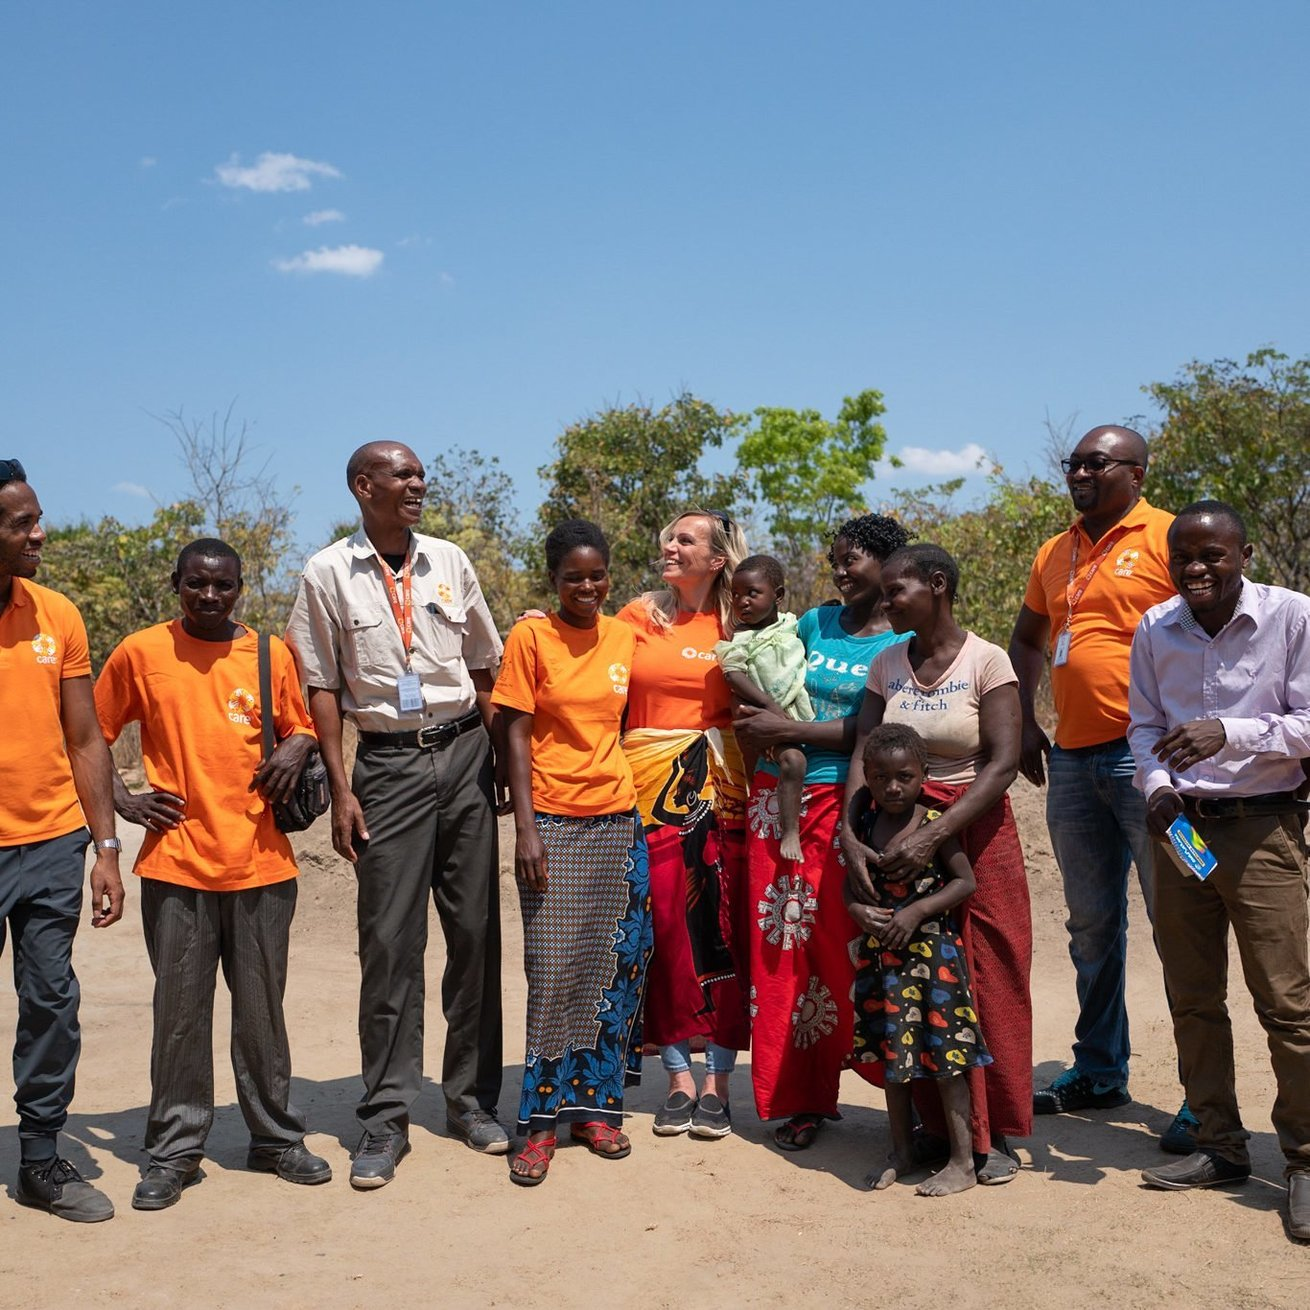 """<ul> <li><span style=""""font-size:11pt"""">From September 20 to October, 15, 2018, the CARE Canada Knowledge Translation &amp; Public Engagement Officer (Tanja Kisslinger) traveled with two external, videographer consultants to Malawi, Mozambique and Zambia (the three SANI project countries). This was the first (of three, planned) resource allocation trips to support the SANI public engagement campaign (i.e. Feed Her Future). The Feed Her Future campaign is running in Canada from June 2018 to September 2020 (see: www.feedherfuture.ca). The overall goal of this trip was to collect a first round of (baseline) videographic and photographic footage showing the SANI project on the ground in all three countries. The videographers will spin the footage they collect into various deliverables that will be part of the public engagement campaign in Canada. </span></li> <li><span style=""""font-size:11pt"""">In each country, the goals were to:</span> <ul style=""""list-style-type:circle""""> <li><span style=""""font-size:11pt"""">Collect key, inaugural footage, both video and photographic, which can be used in Year 1 of the campaign to show SANI in practice;</span></li> <li><span style=""""font-size:11pt"""">Collect human-interest stories, quotes, photos and video which demonstrate SANI project activities and progress to date.</span></li> </ul> </li> <li><span style=""""font-size:11pt"""">This specific set of photos was collected during 4 days of field visits in Zambia. Specifically, the photos show:</span> <ul style=""""list-style-type:circle""""> <li><span style=""""font-size:11pt"""">We visited Kanchibiya District, Mnikashi village. There we did a walking tour to see agricultural and WASH interventions put in place by SANI. That included, a local water hole (dirty, small) which had been used (and is still used by some households) but is being replaced by wells and boreholes. We ran into a local woman doing her laundry and dishes there. We also visited the backyard gardens supported by SANI and the community demonstrated """